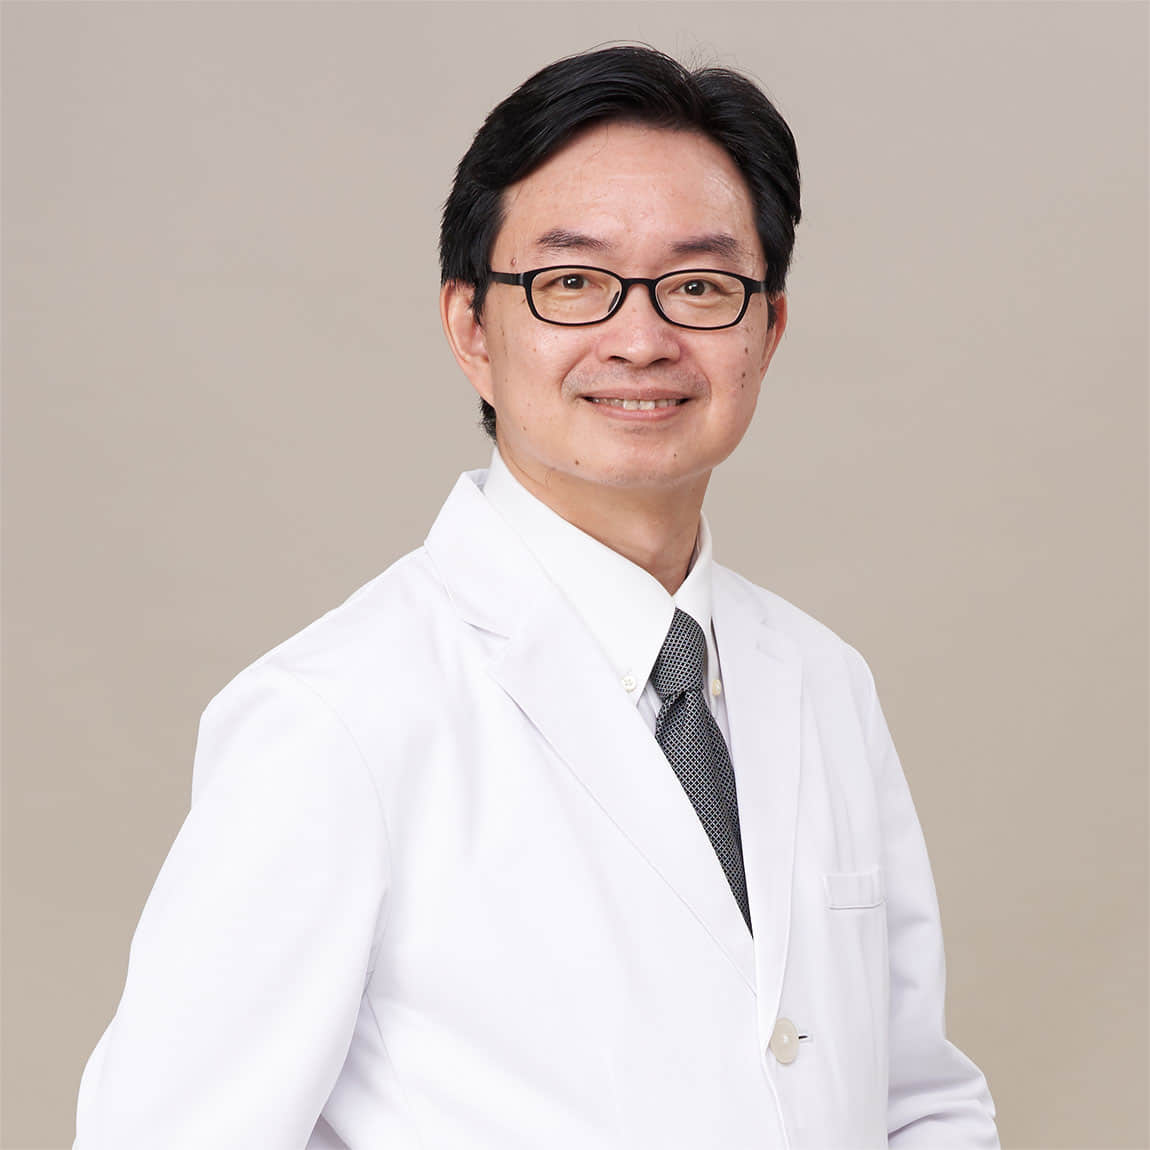 何彦秉 Jason Yen-Ping Ho, MD.